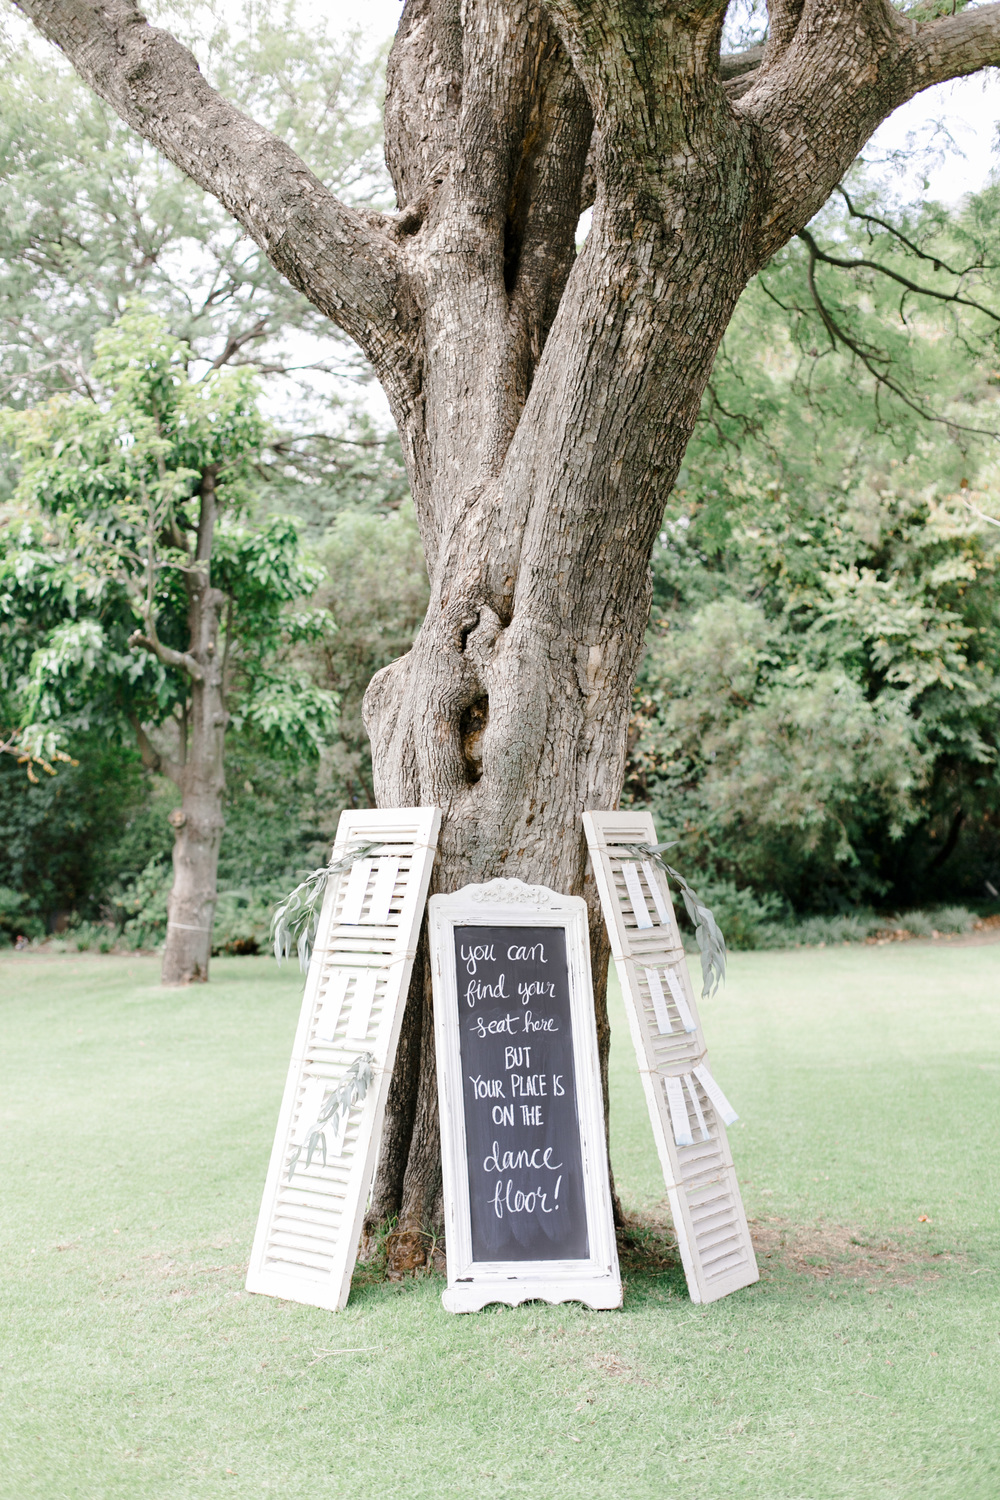 long Meadow johannesburg wedding venue photographer_067.jpg